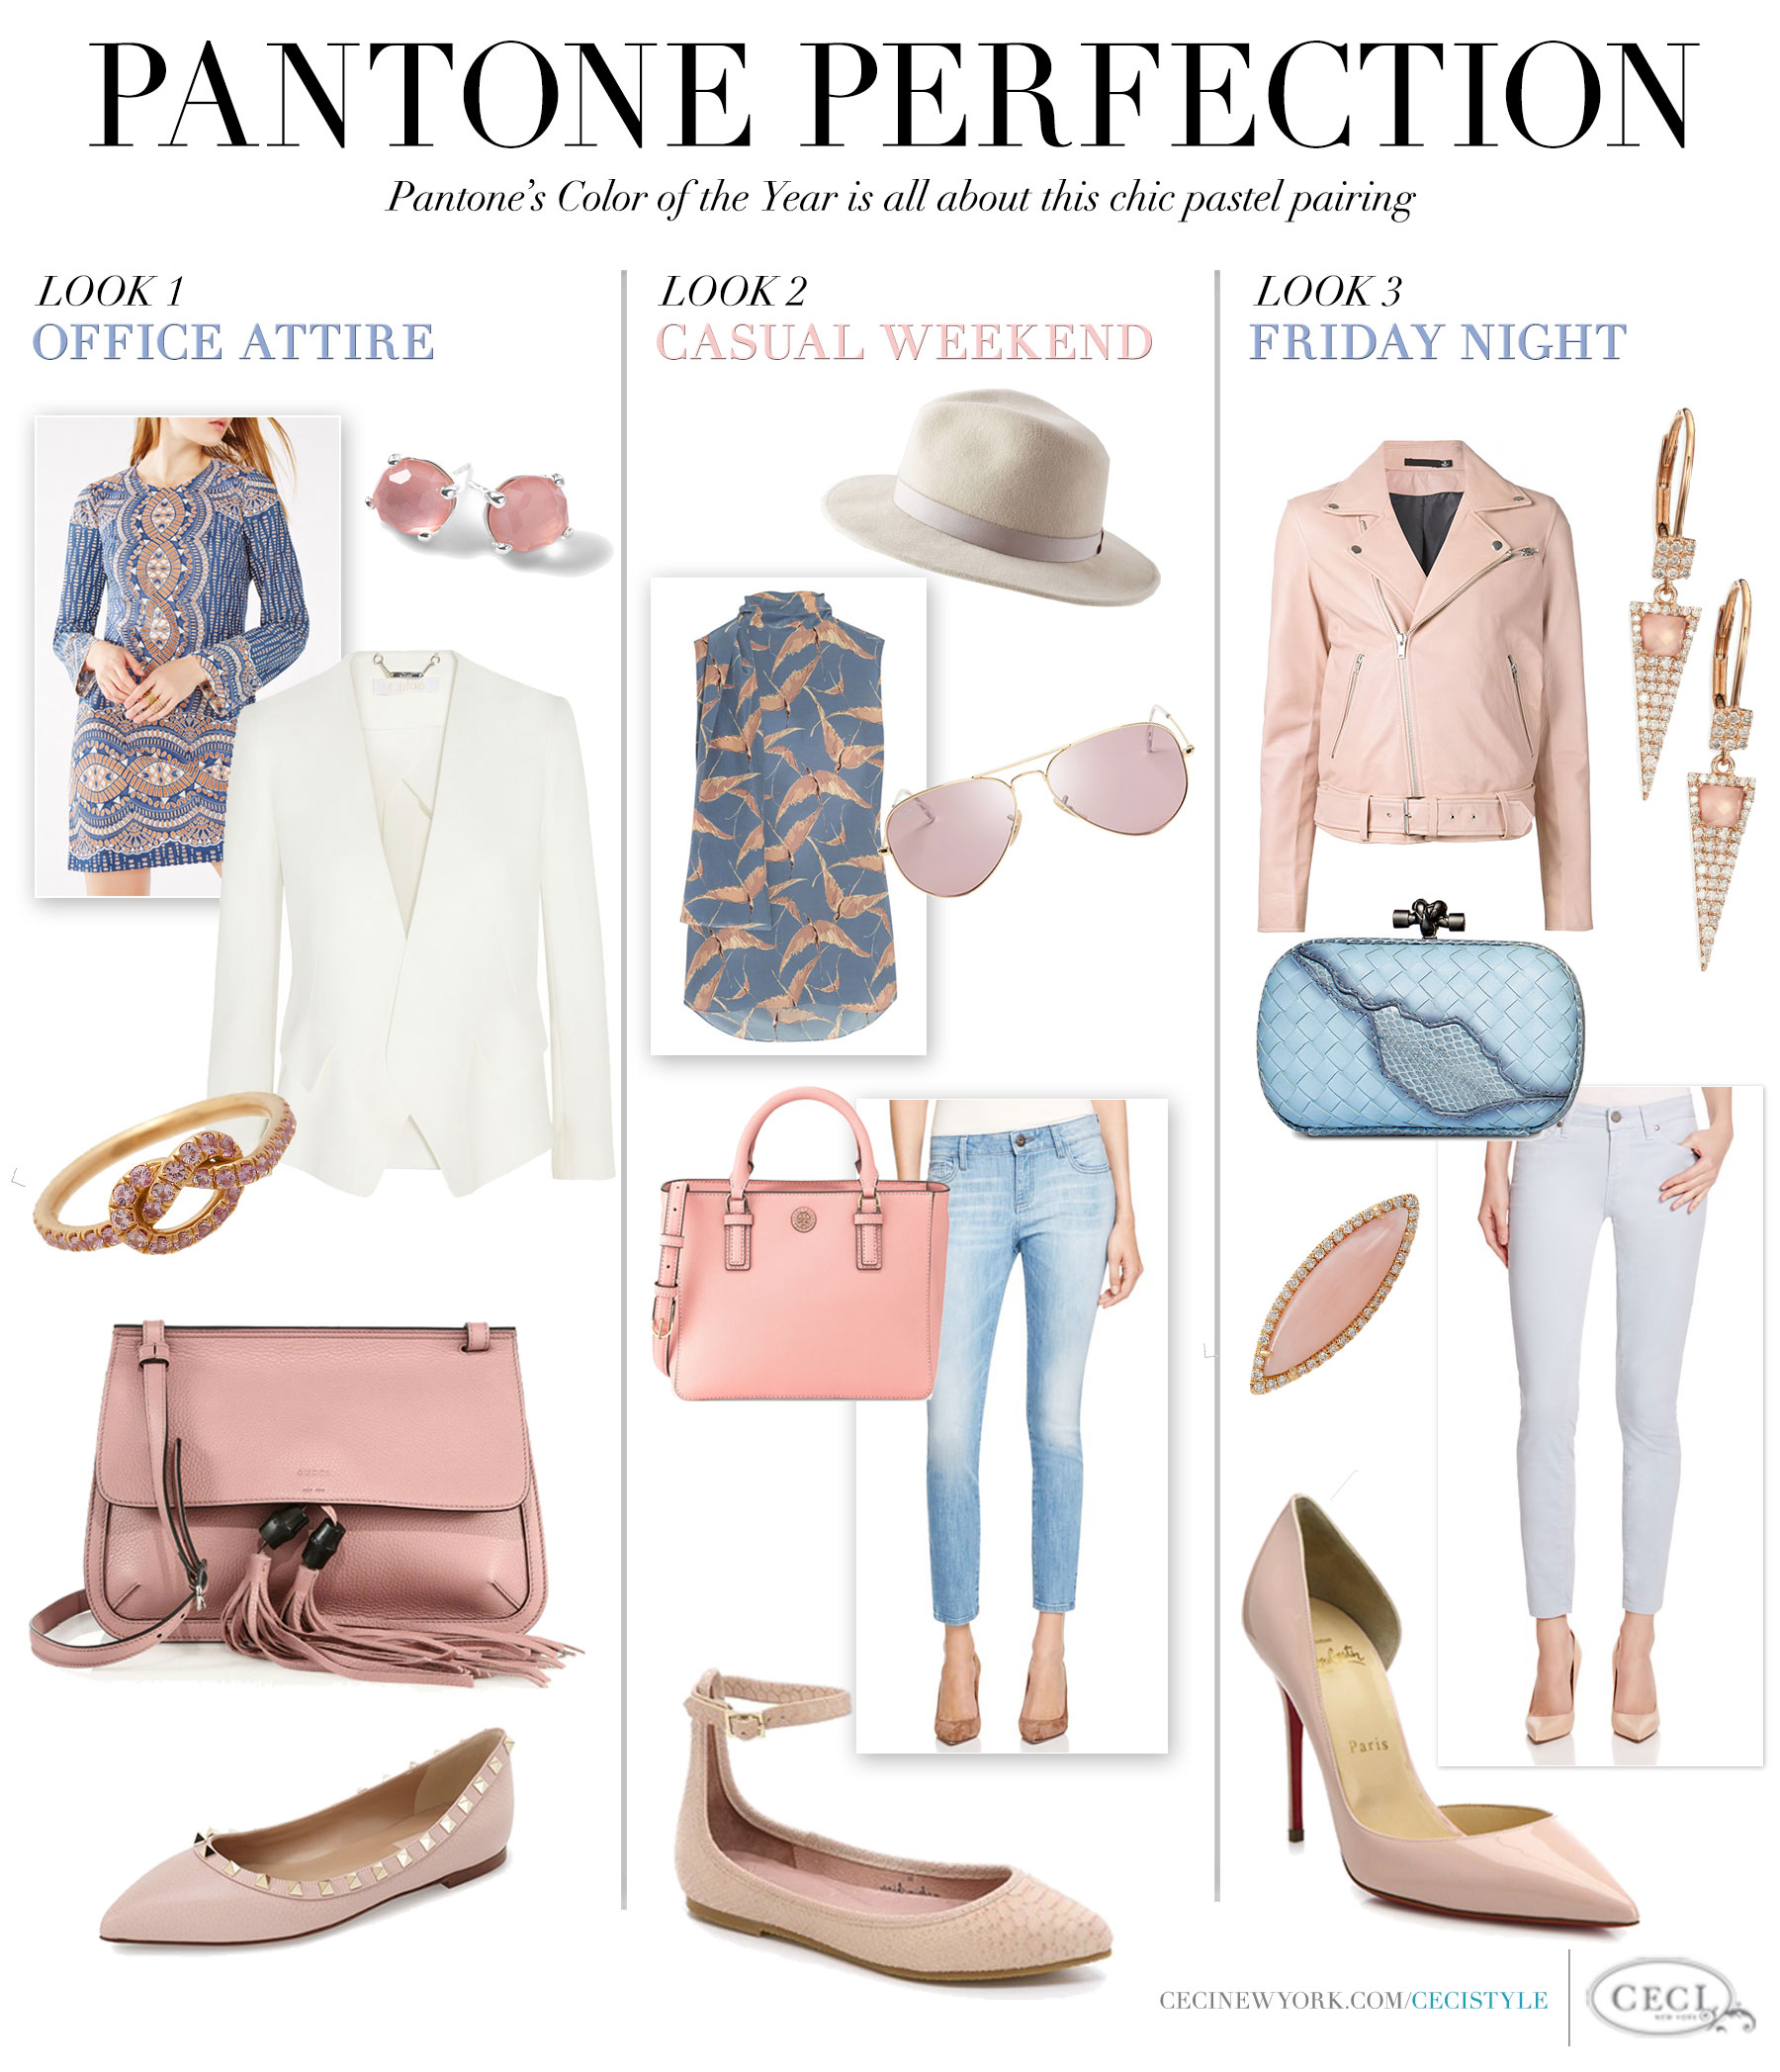 Pantone's Color of the Year is all about the chic pastel pairing